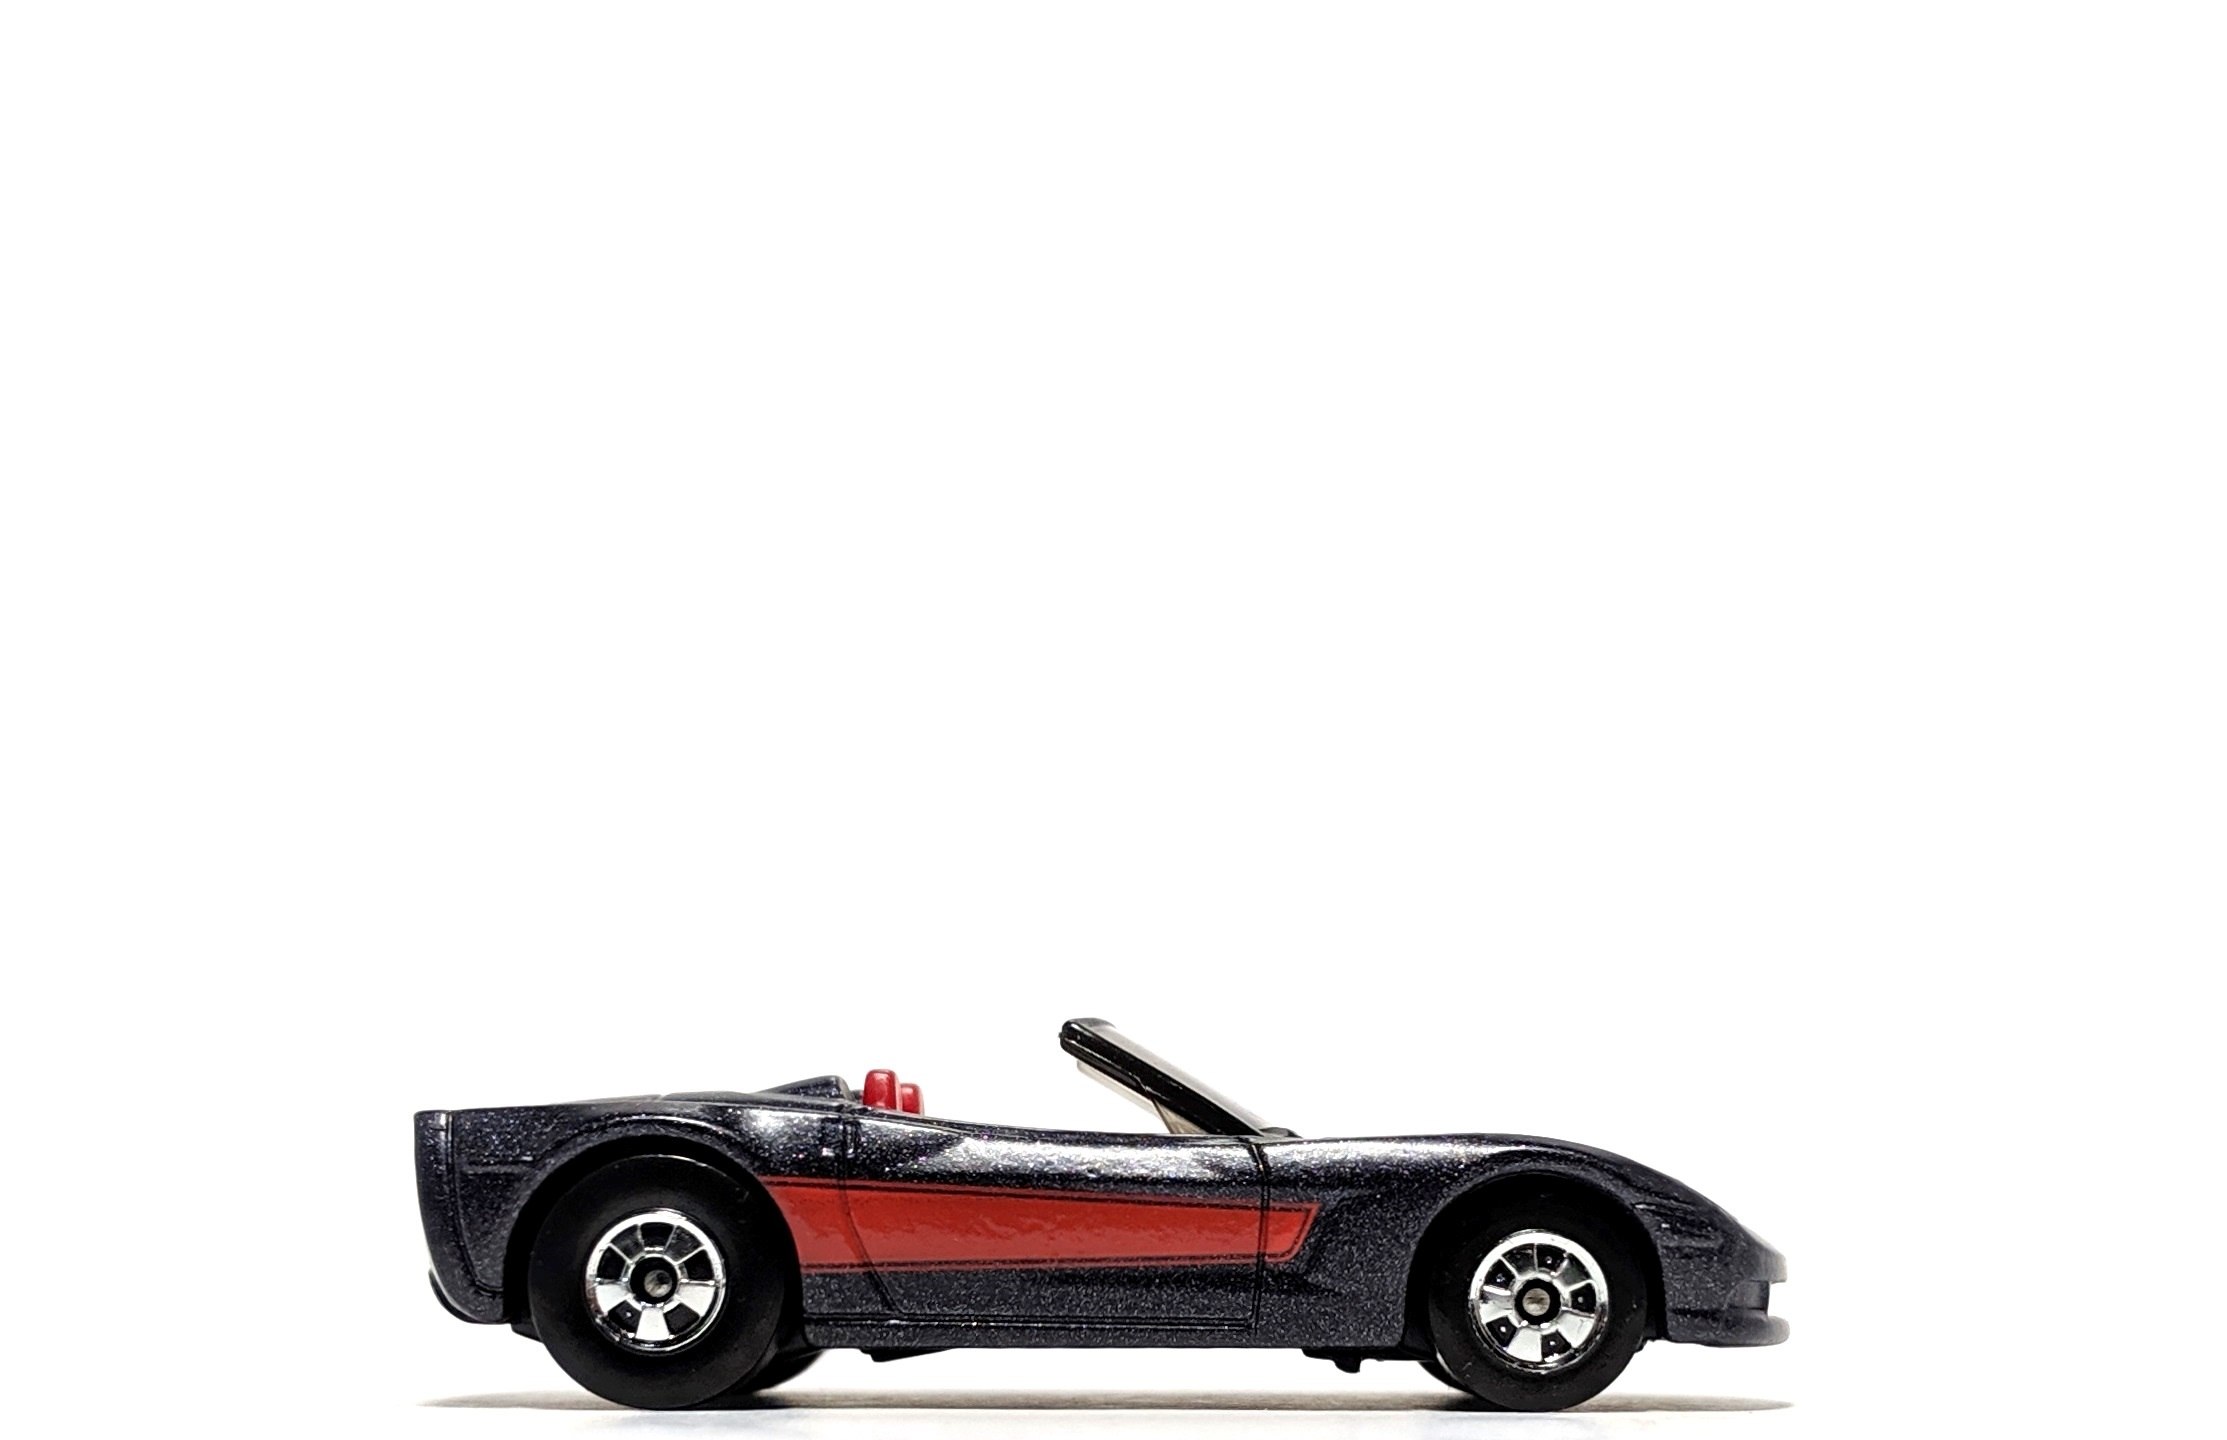 Corvette C6, by Hot Wheels (Target-exclusive Retro Series)